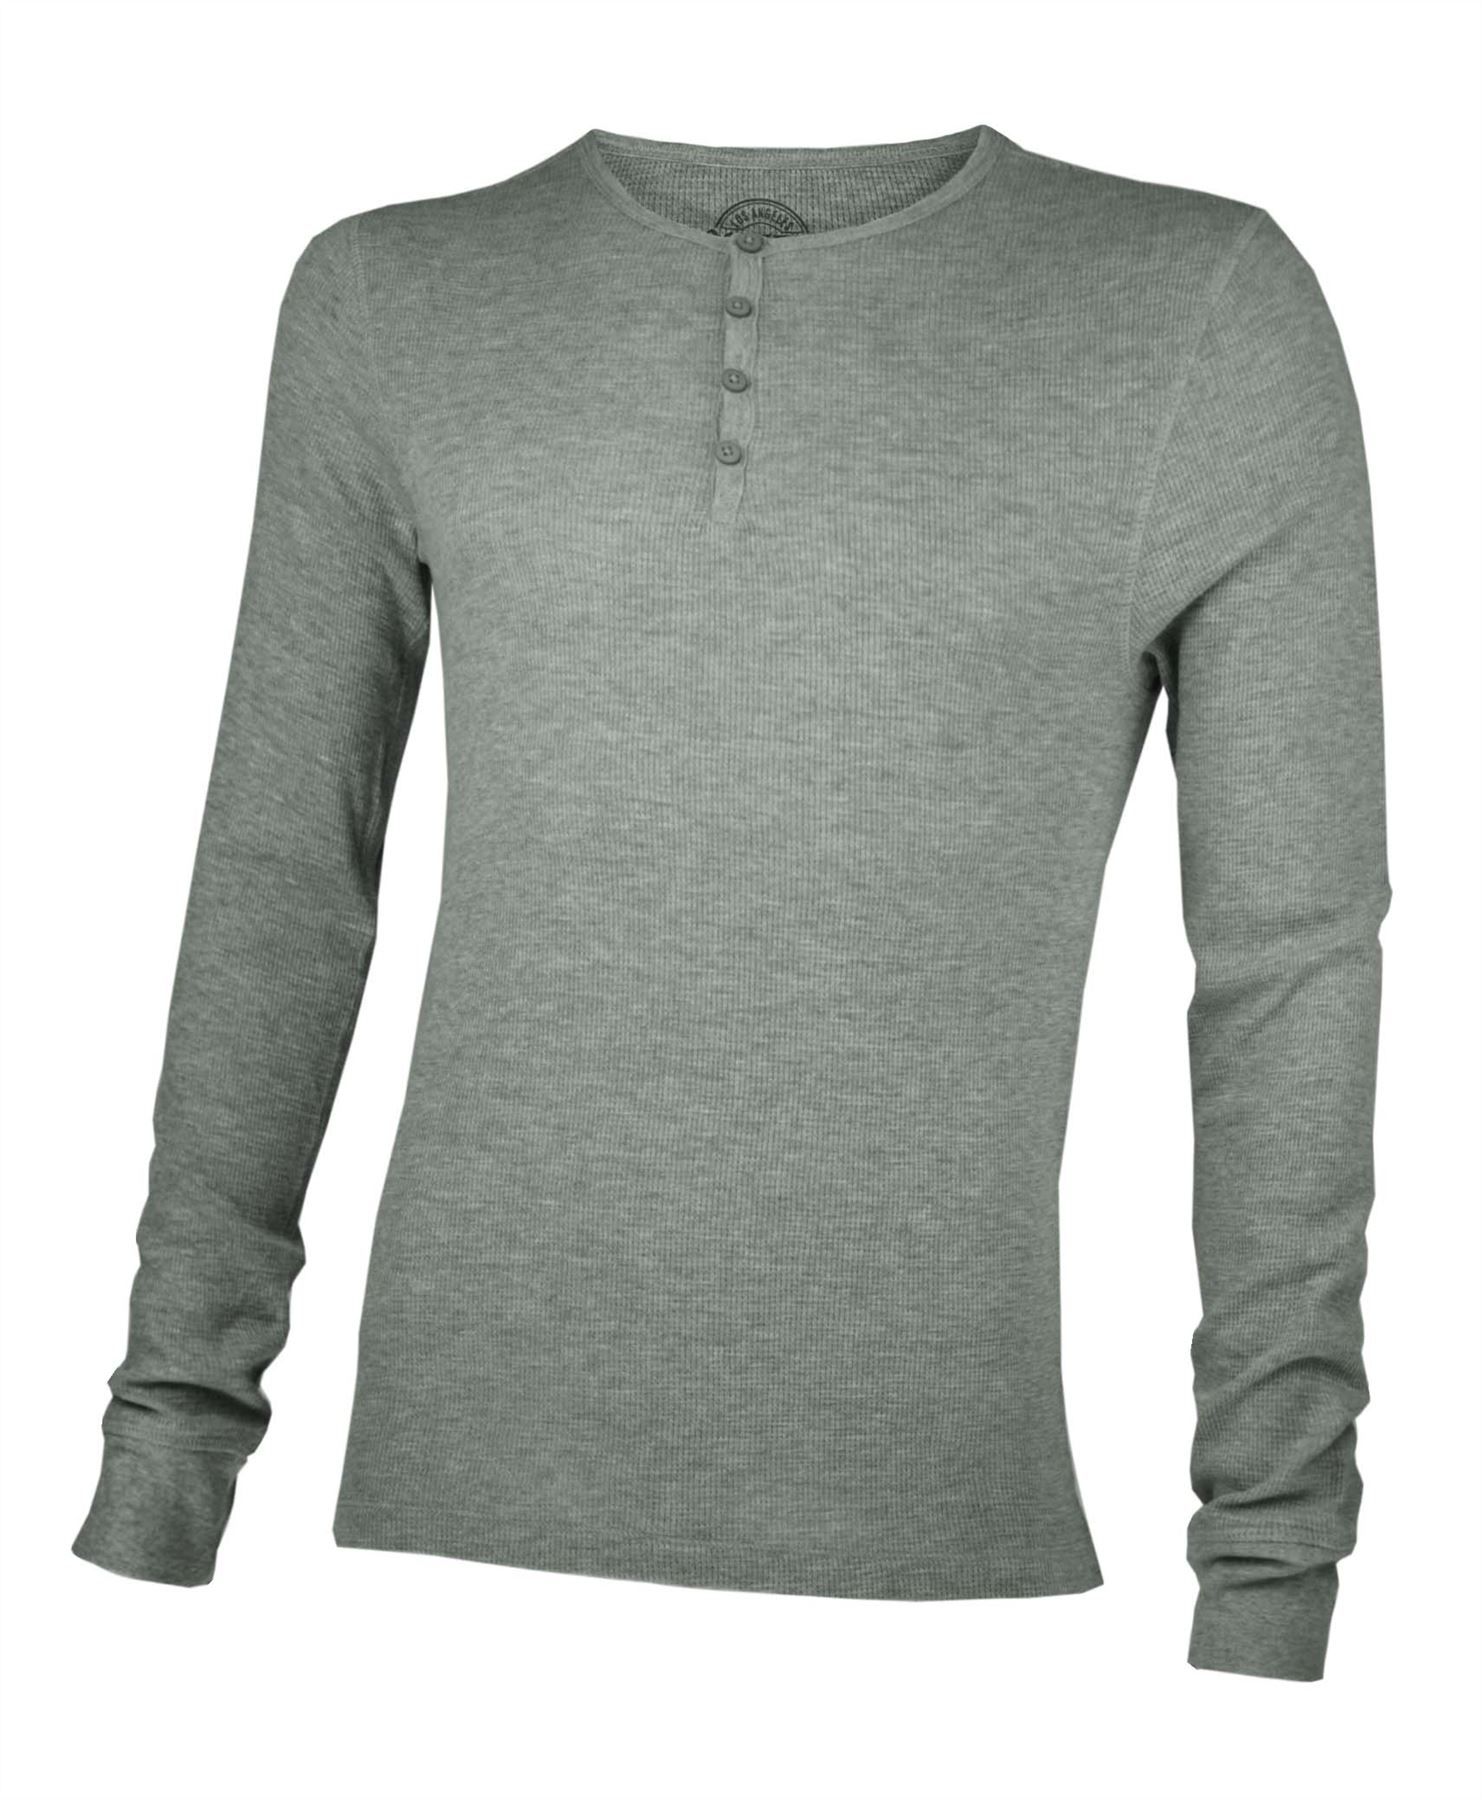 Mens Long Sleeve Waffle Thermal Button Top Sweatshirt